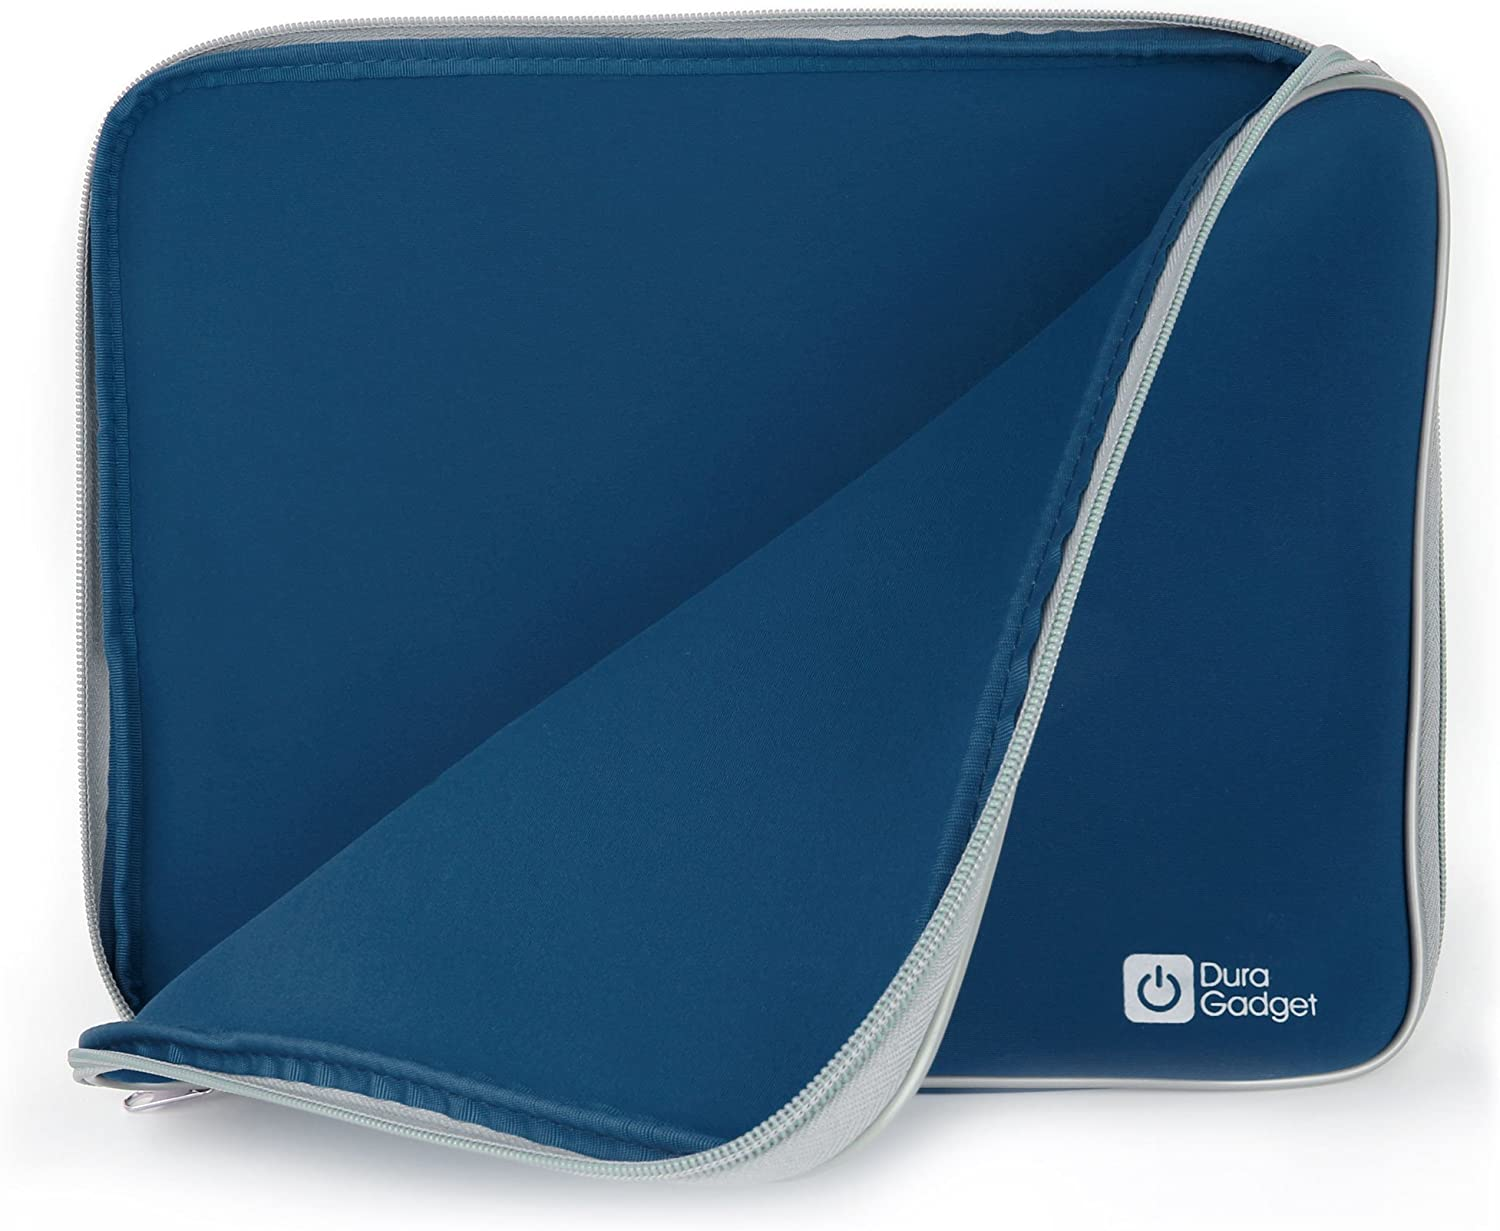 DURAGADGET Blue Neoprene Laptop Sleeve Case - Compatible with Acer Chromebook 15 CB5-571-C1DZ